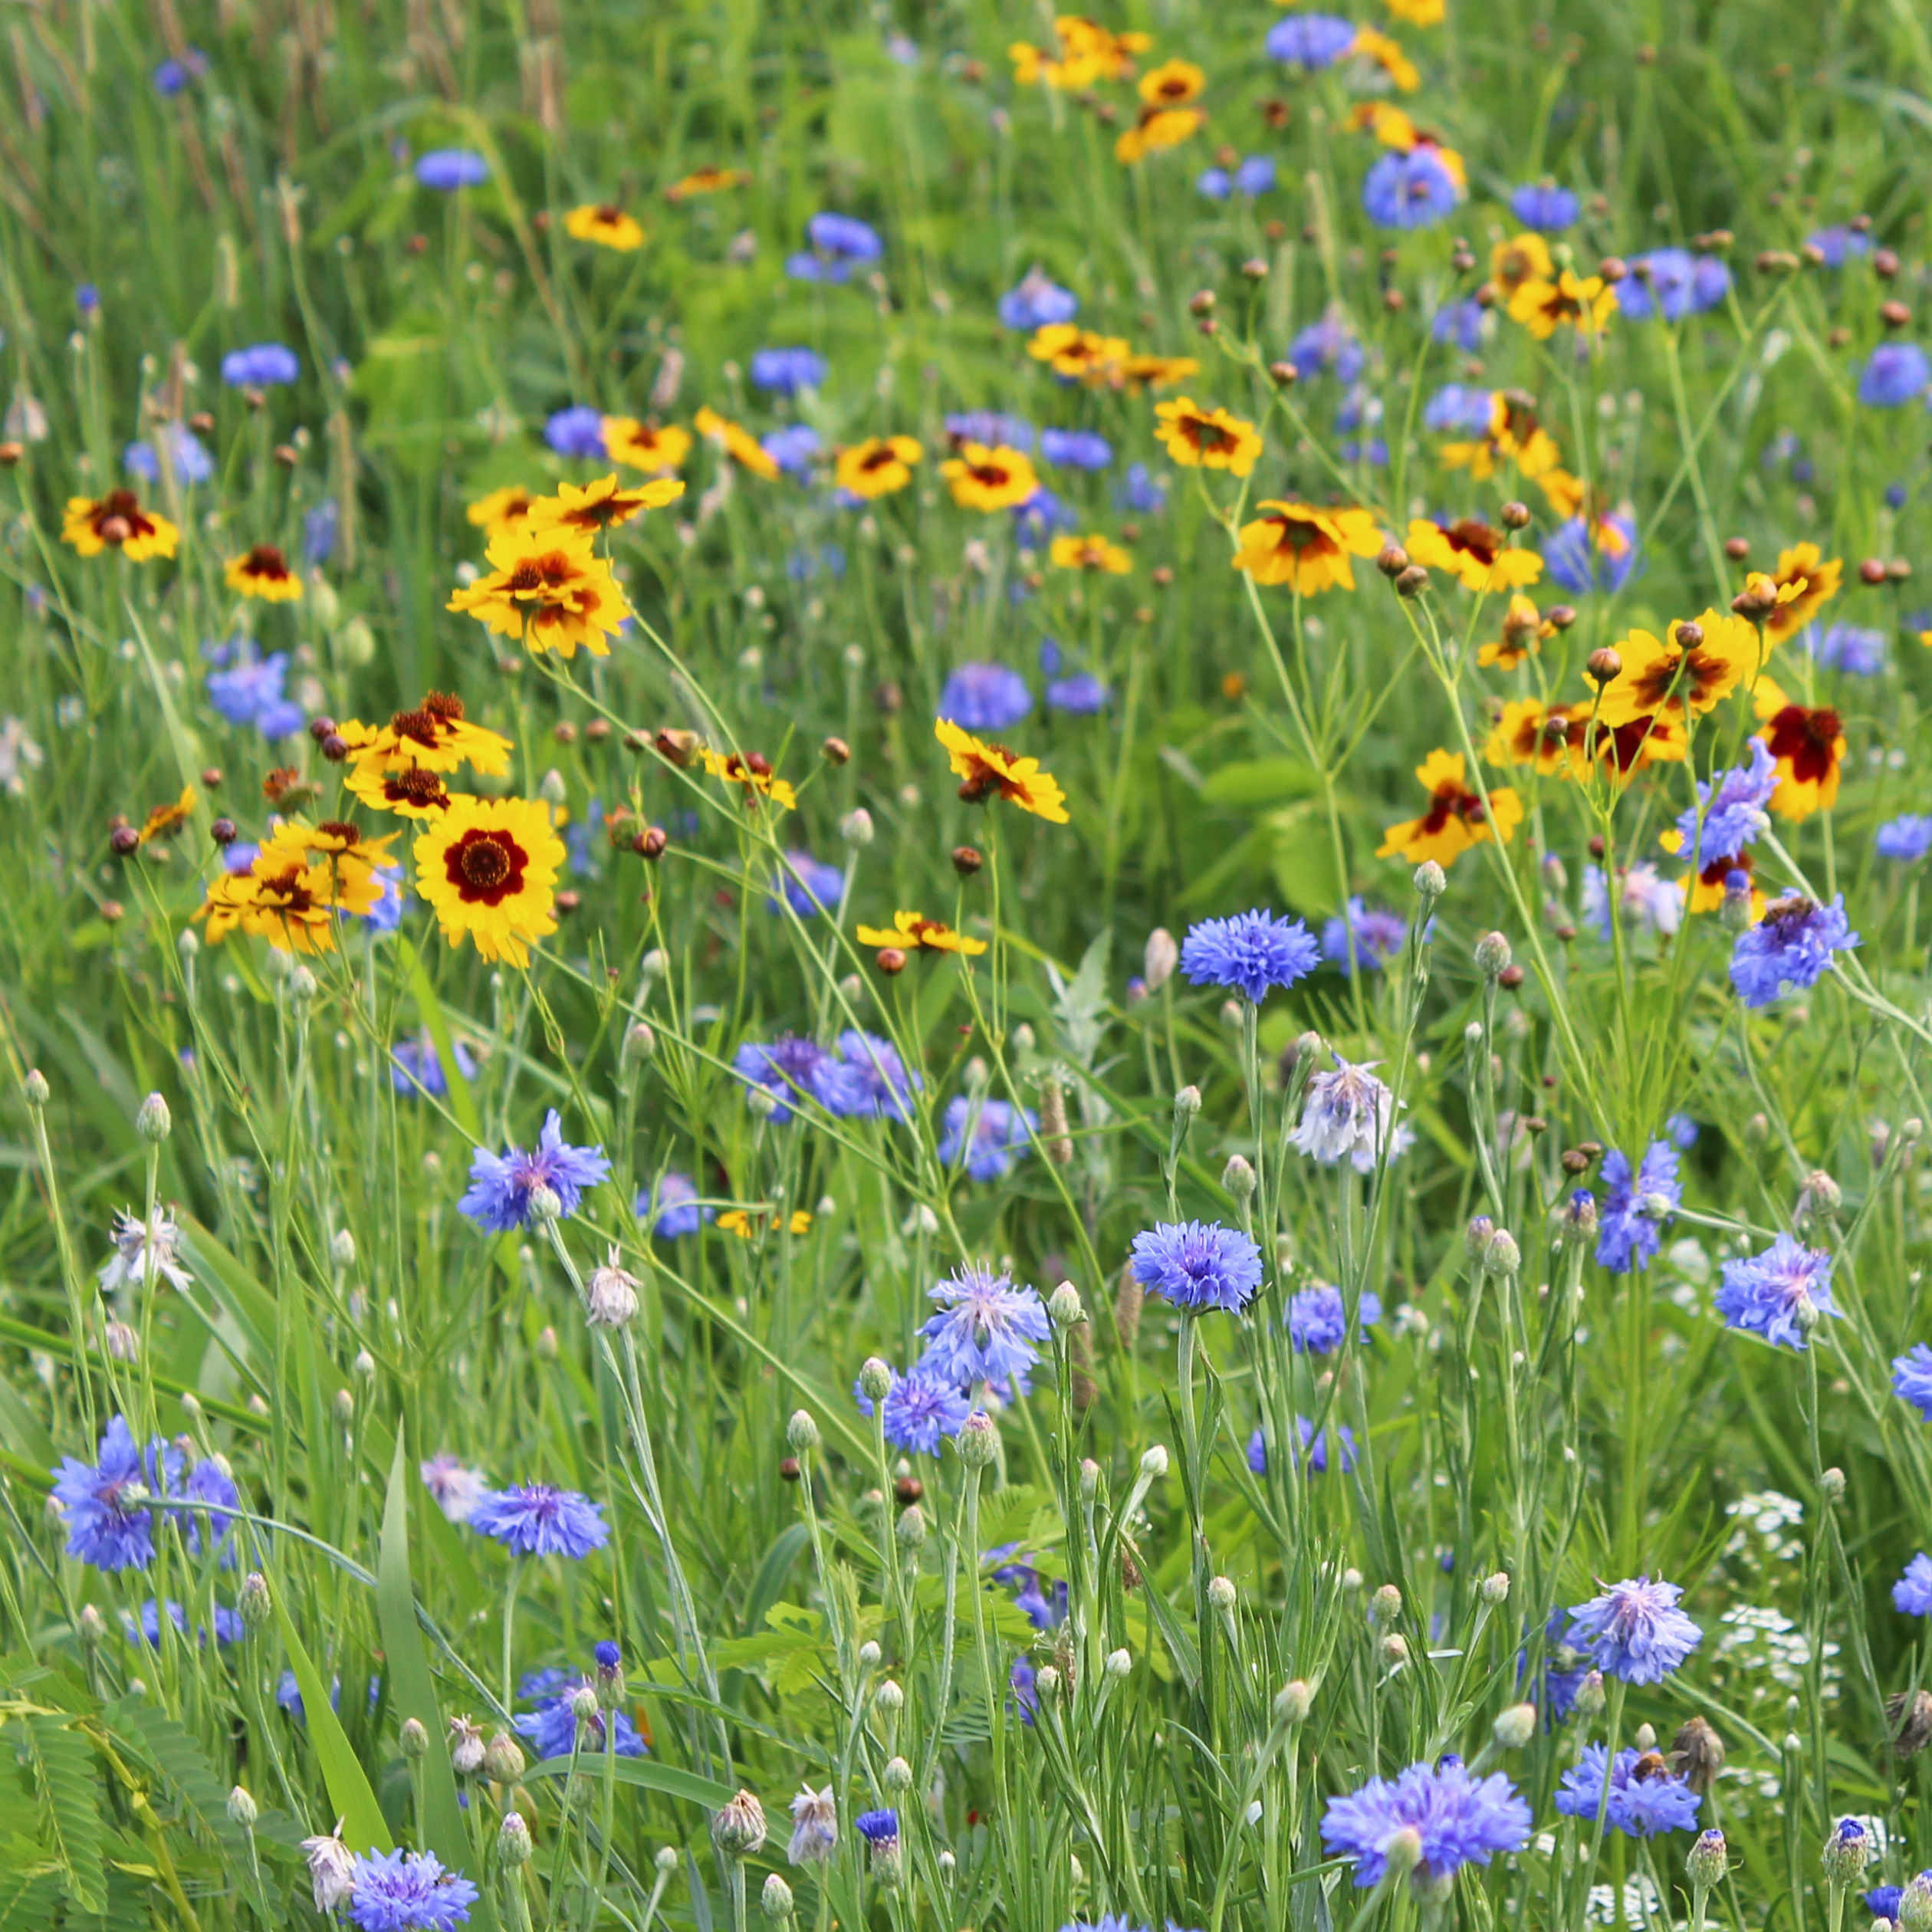 A meadow is filled with colorful blossoms, primarily bluish-purple and yellow flowers.